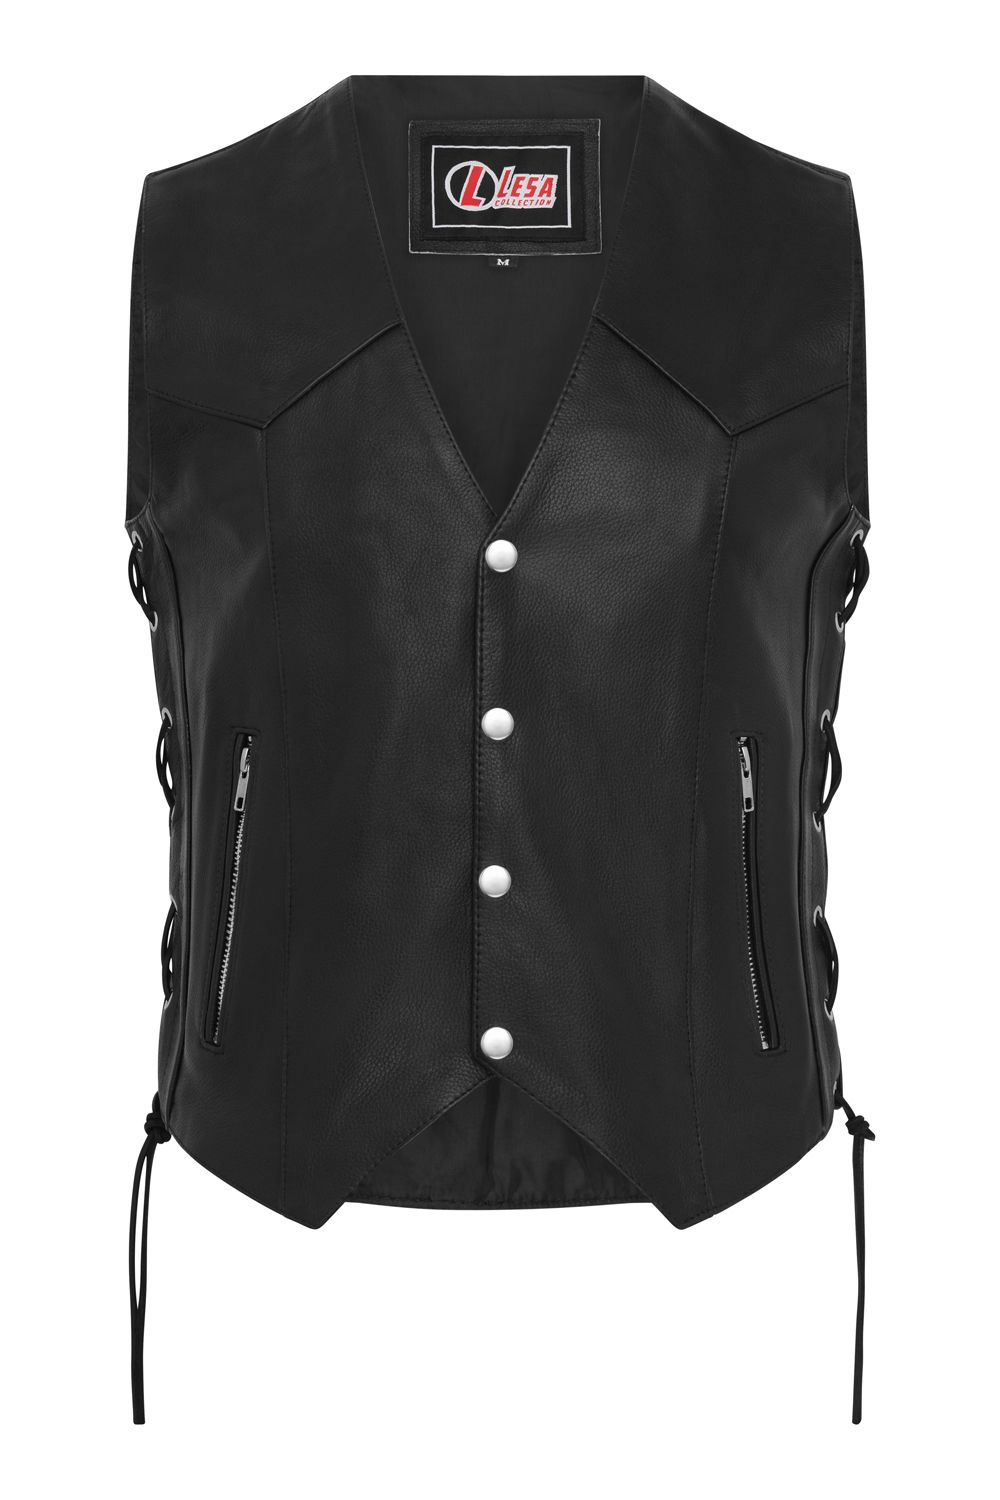 Osx New Men Black Soft Cowhide Biker Harley Leather Stud Jacket Rock